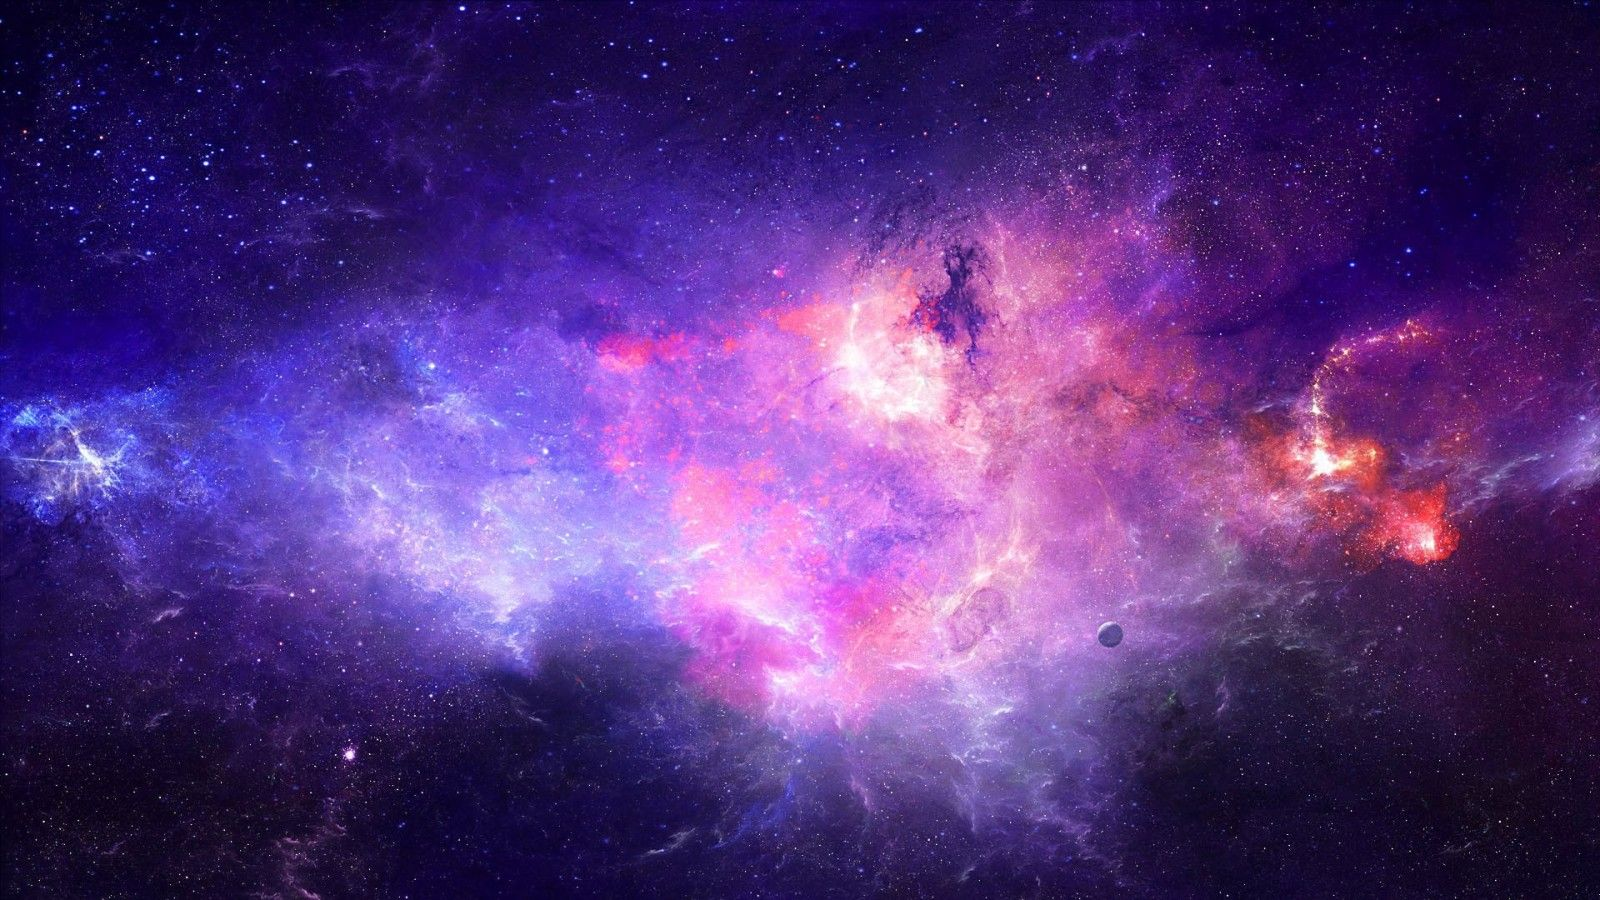 Colorful Galaxy Wallpaper High Quality Resolution H6p Purple Galaxy Wallpaper Galaxy Wallpaper Galaxy Images